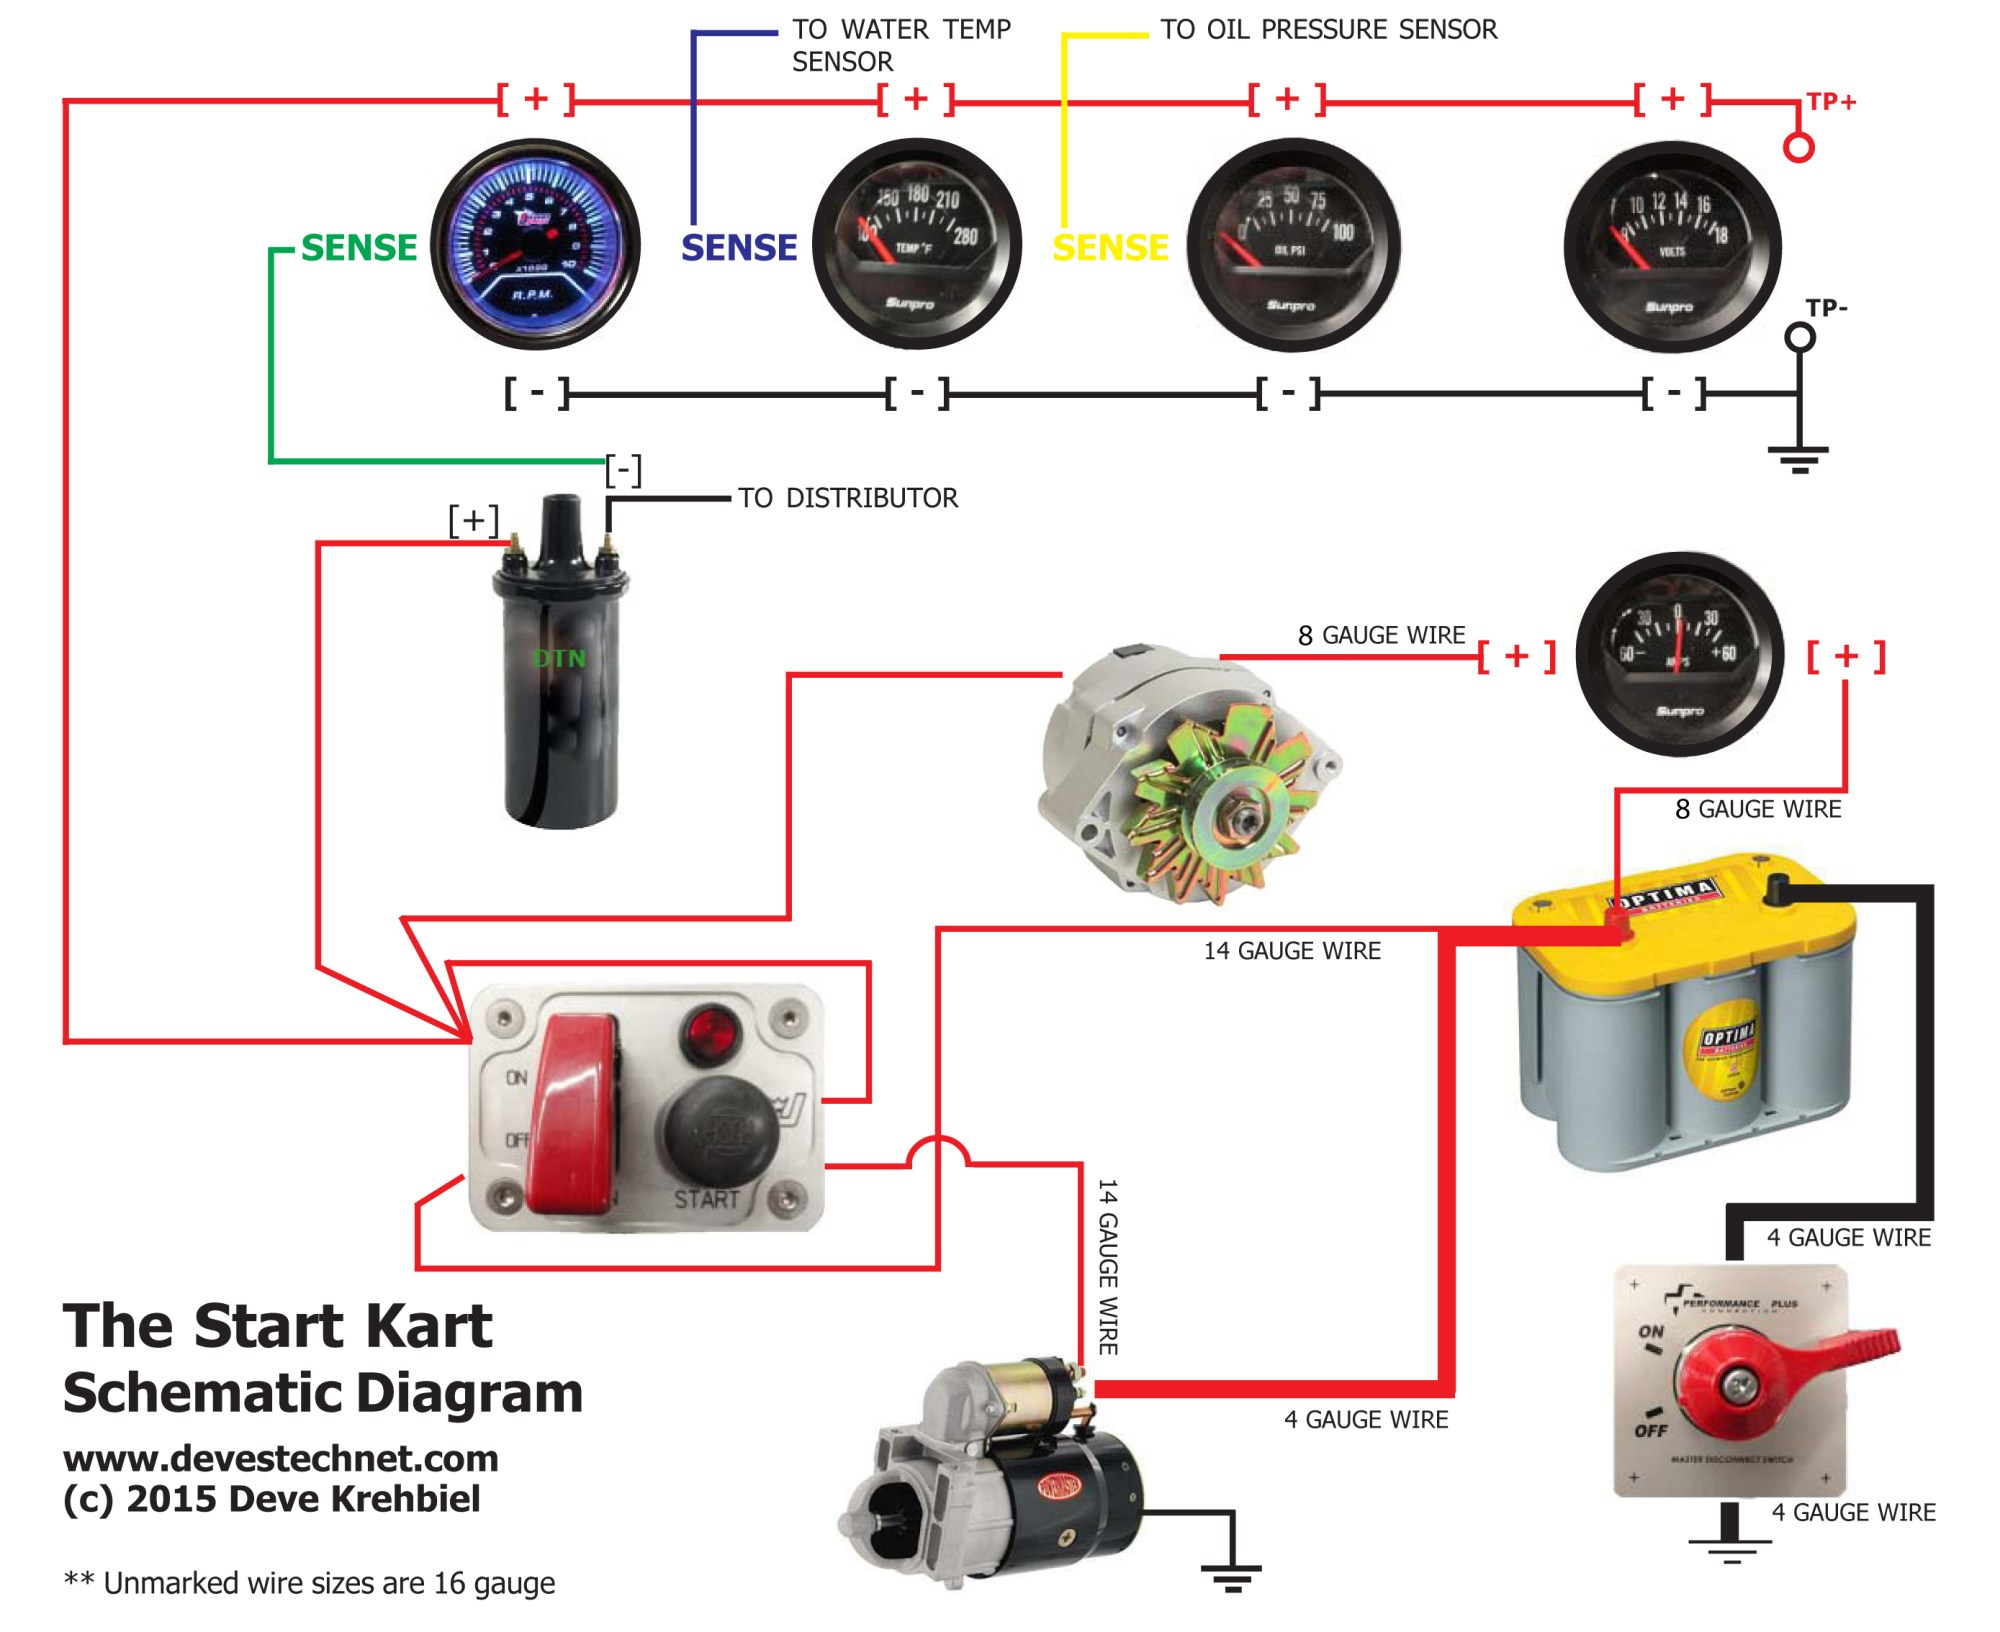 hight resolution of car meter wiring diagram wiring diagrams konsult car amp meter wiring